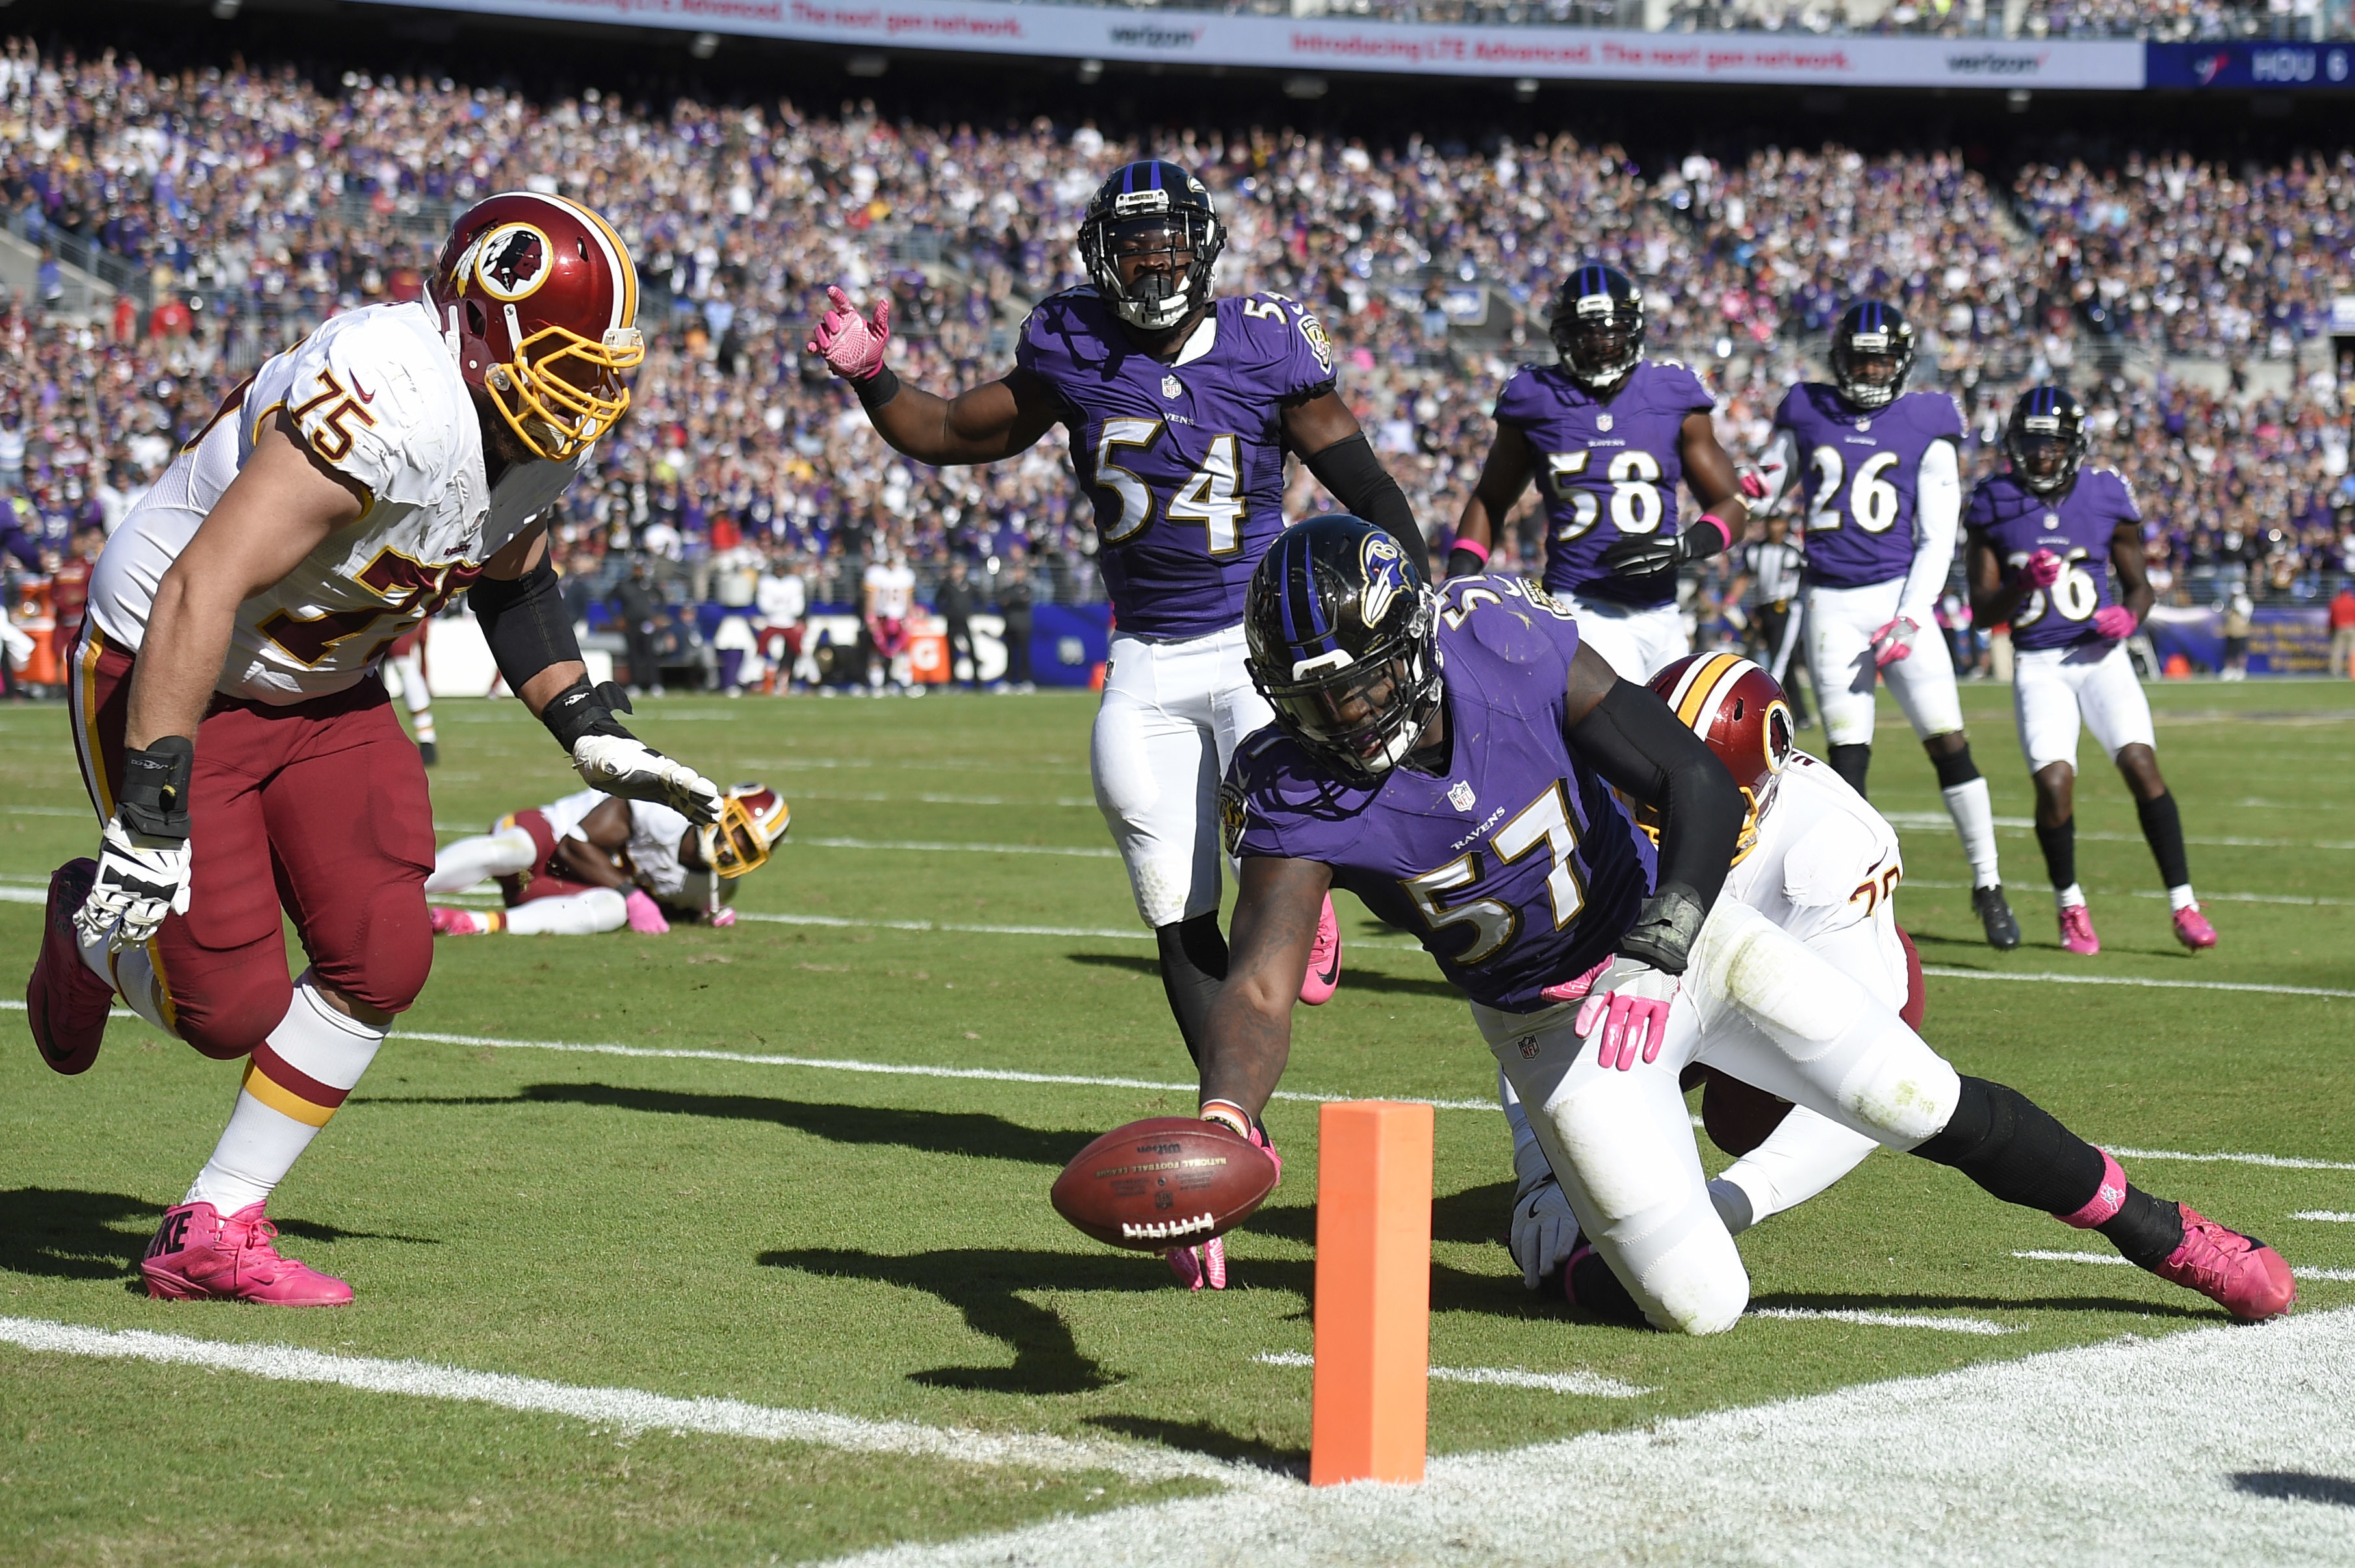 Baltimore Ravens' C.J. Mosley (57) fumbles a pass he interceptedduring the second half of an NFL football game against the Washington Redskins, Sunday, Oct. 9, 2016, in Baltimore. (AP Photo/Nick Wass)